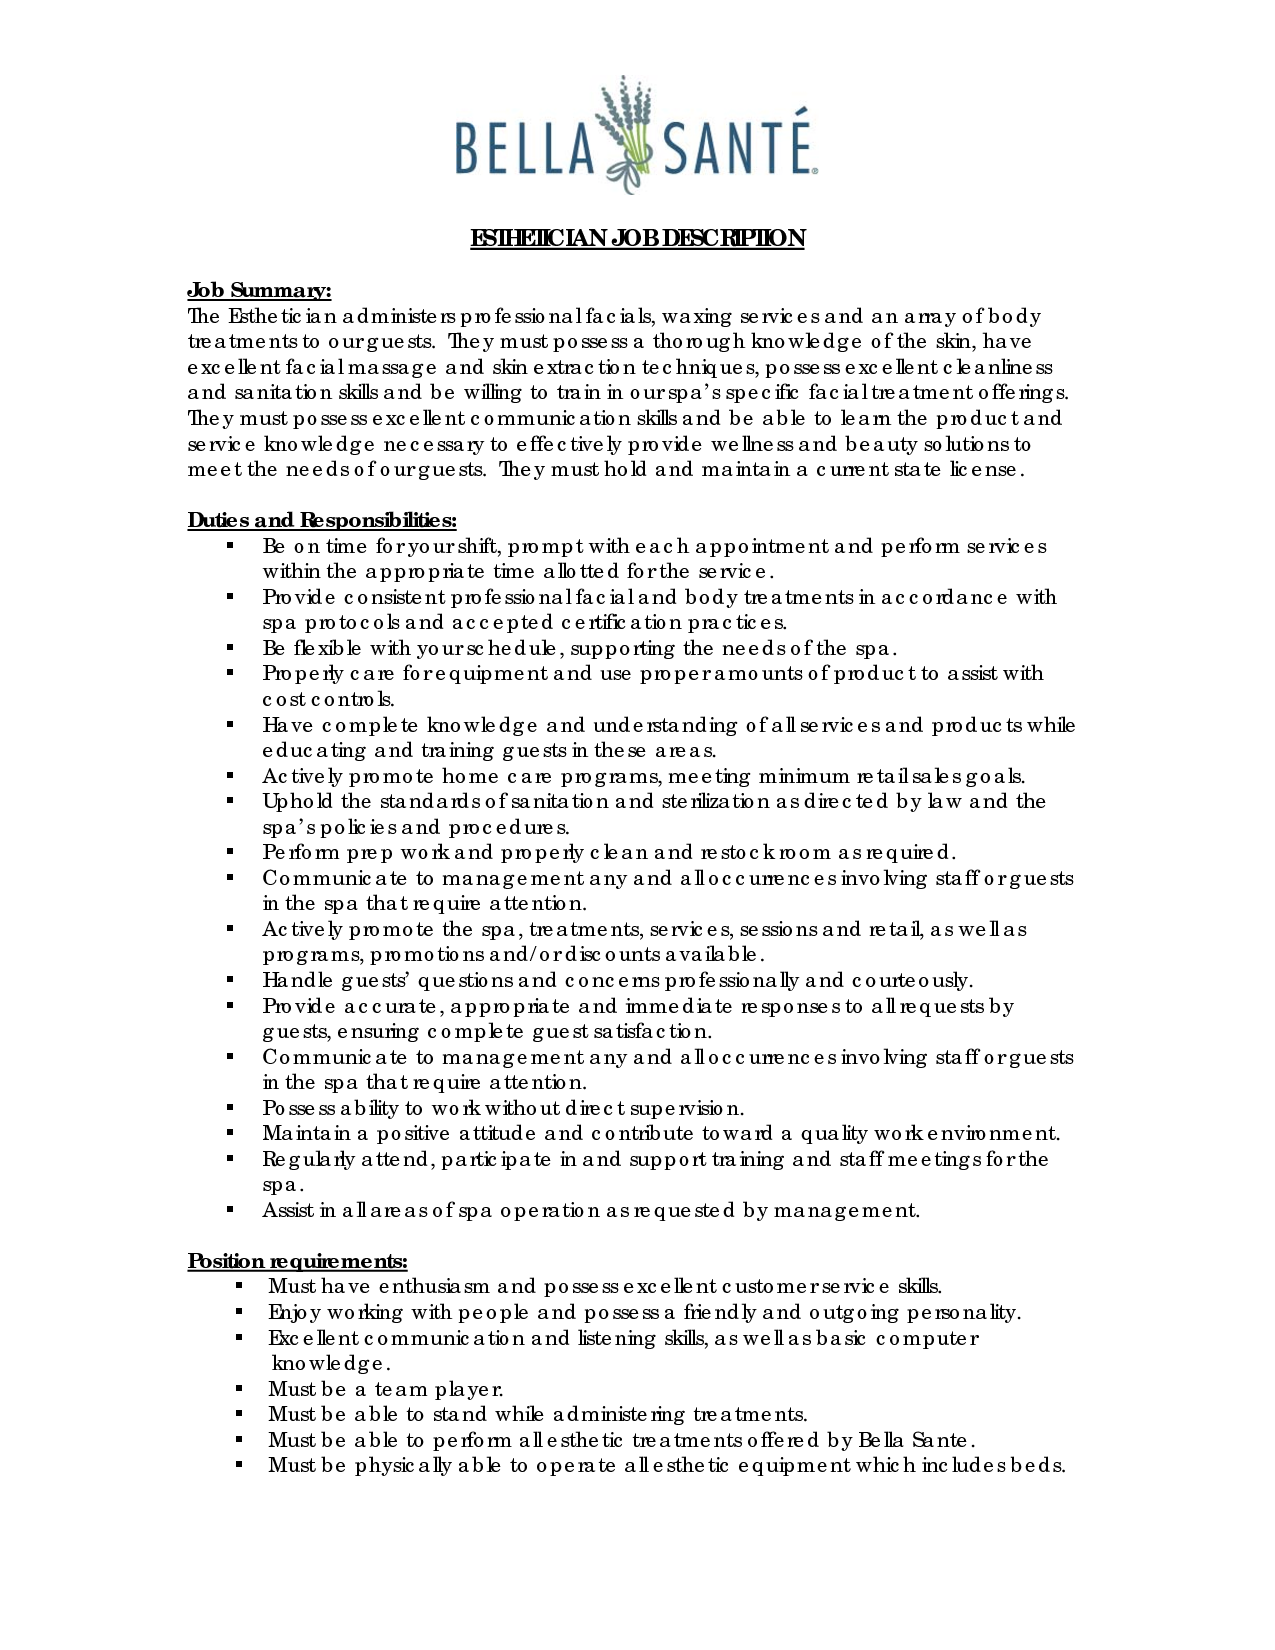 resume examples for esthetician